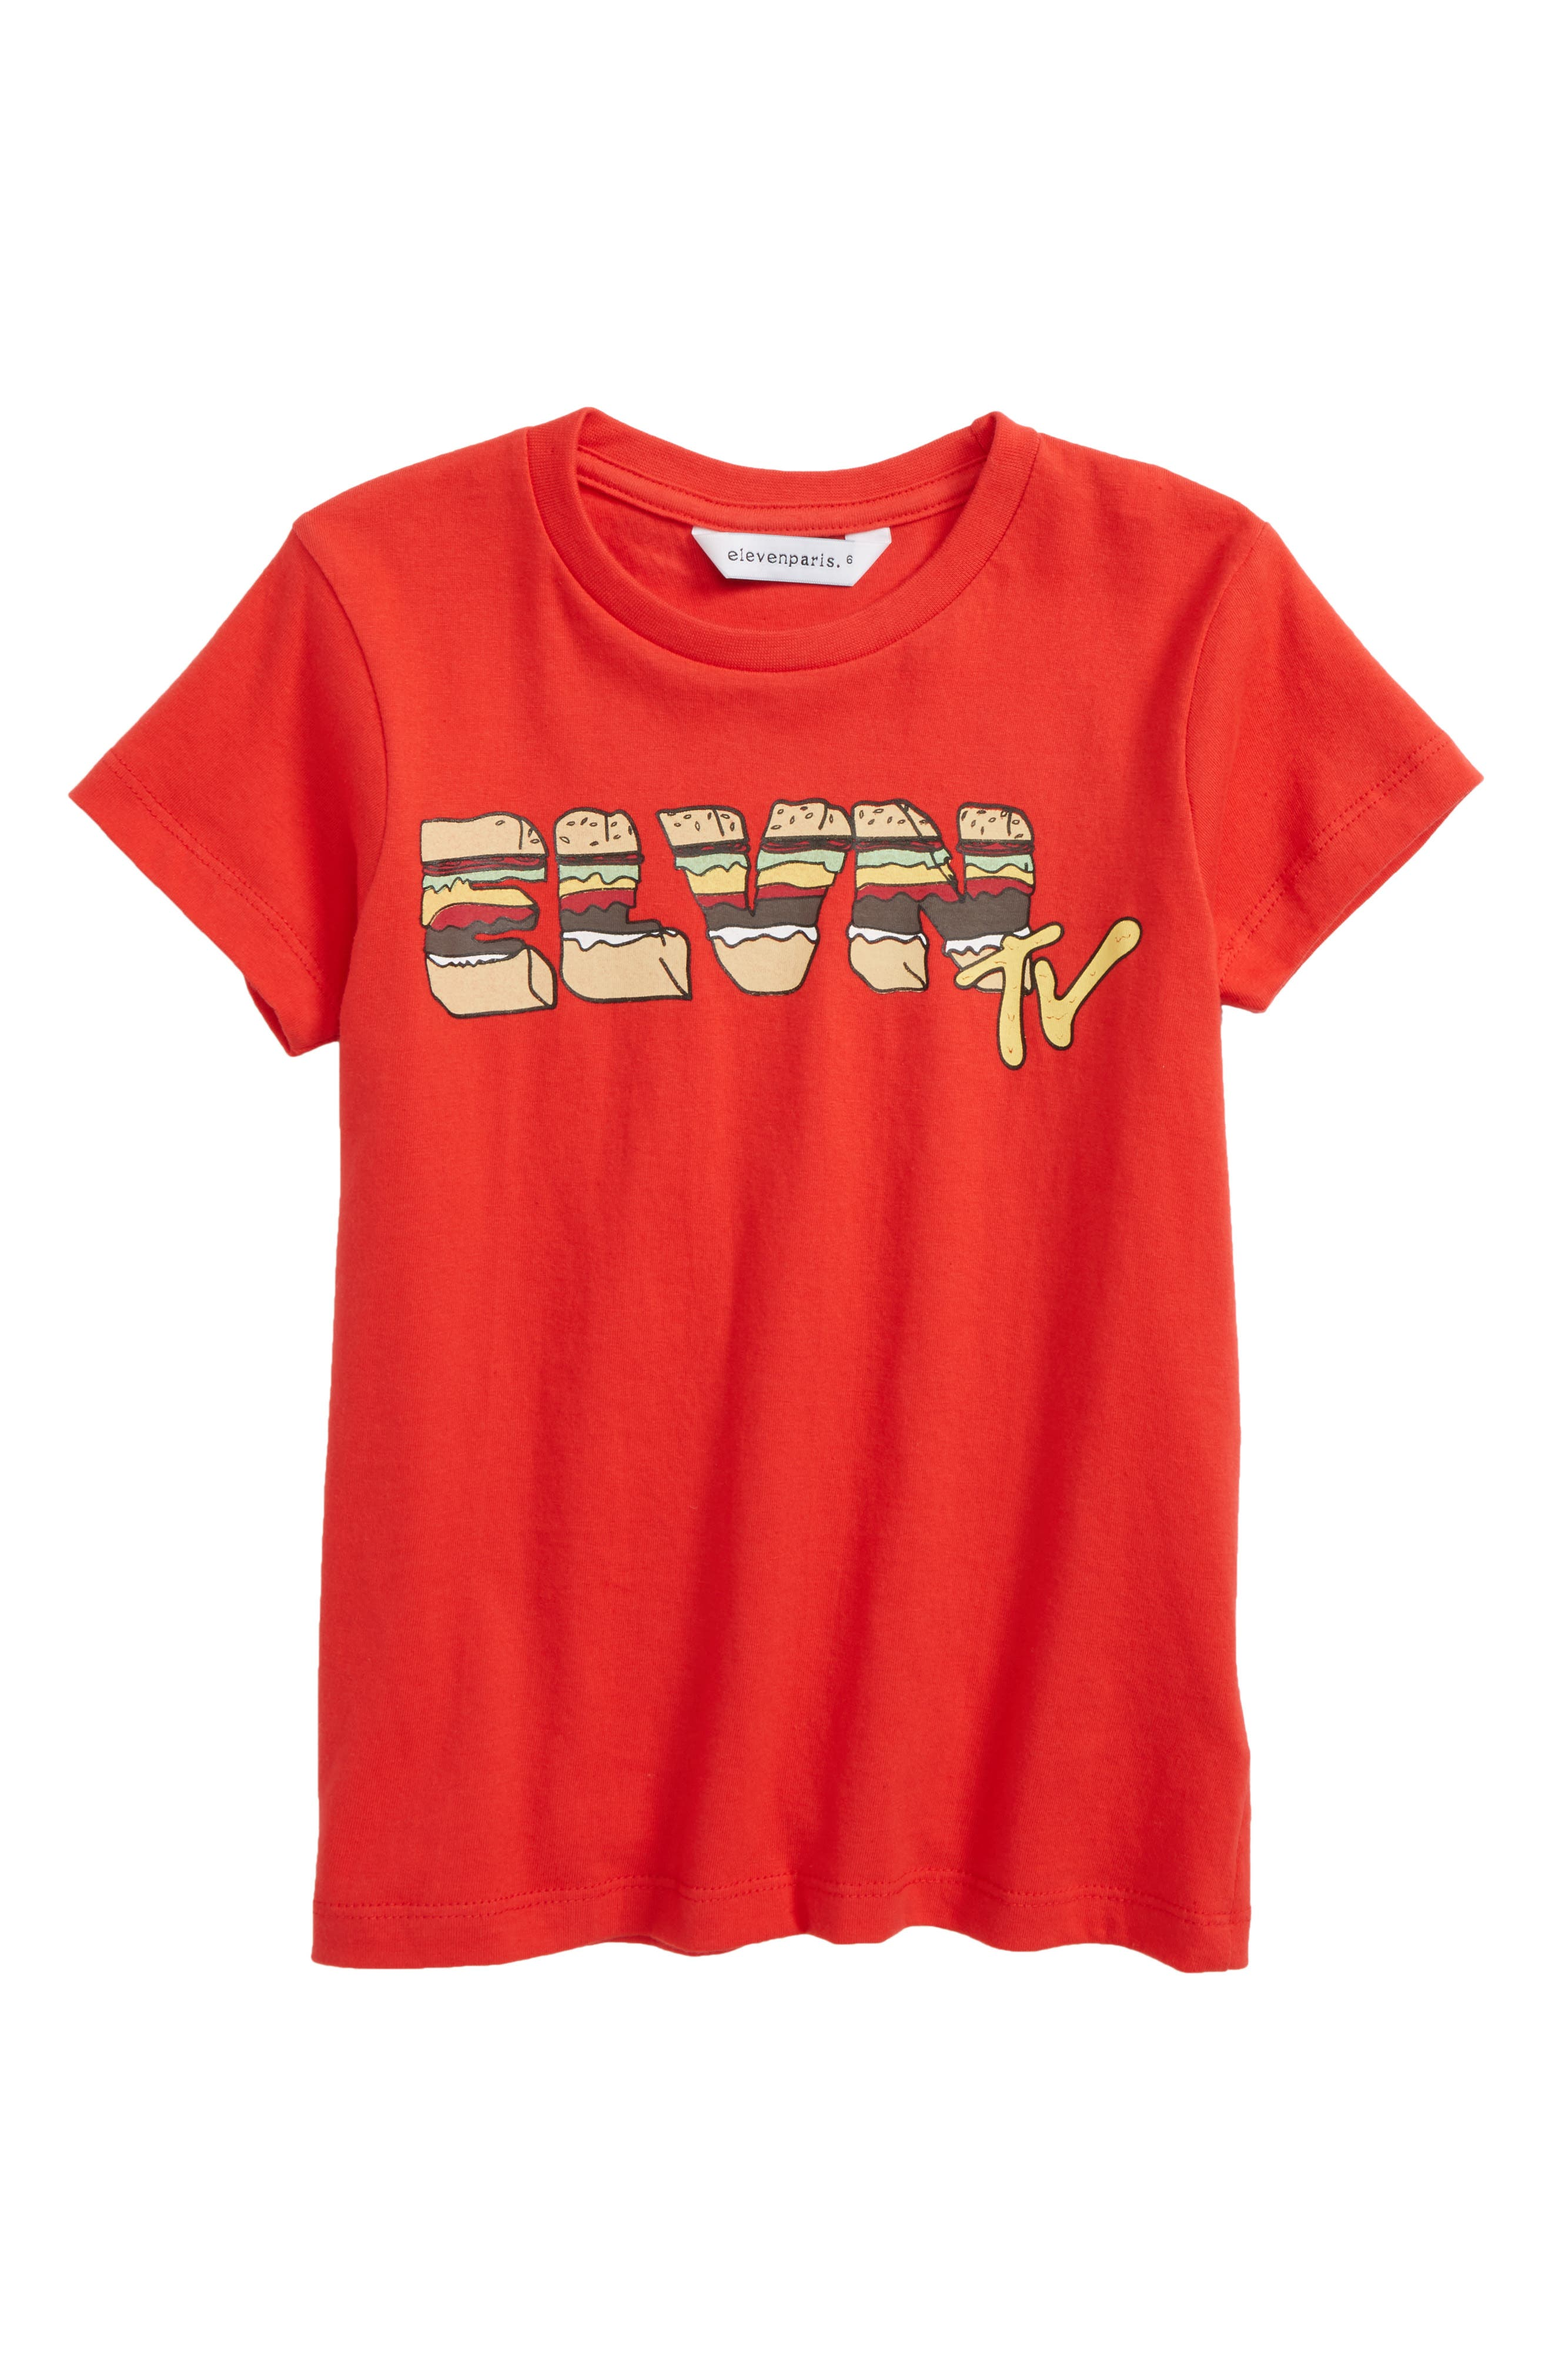 HTV T-Shirt,                             Main thumbnail 1, color,                             600